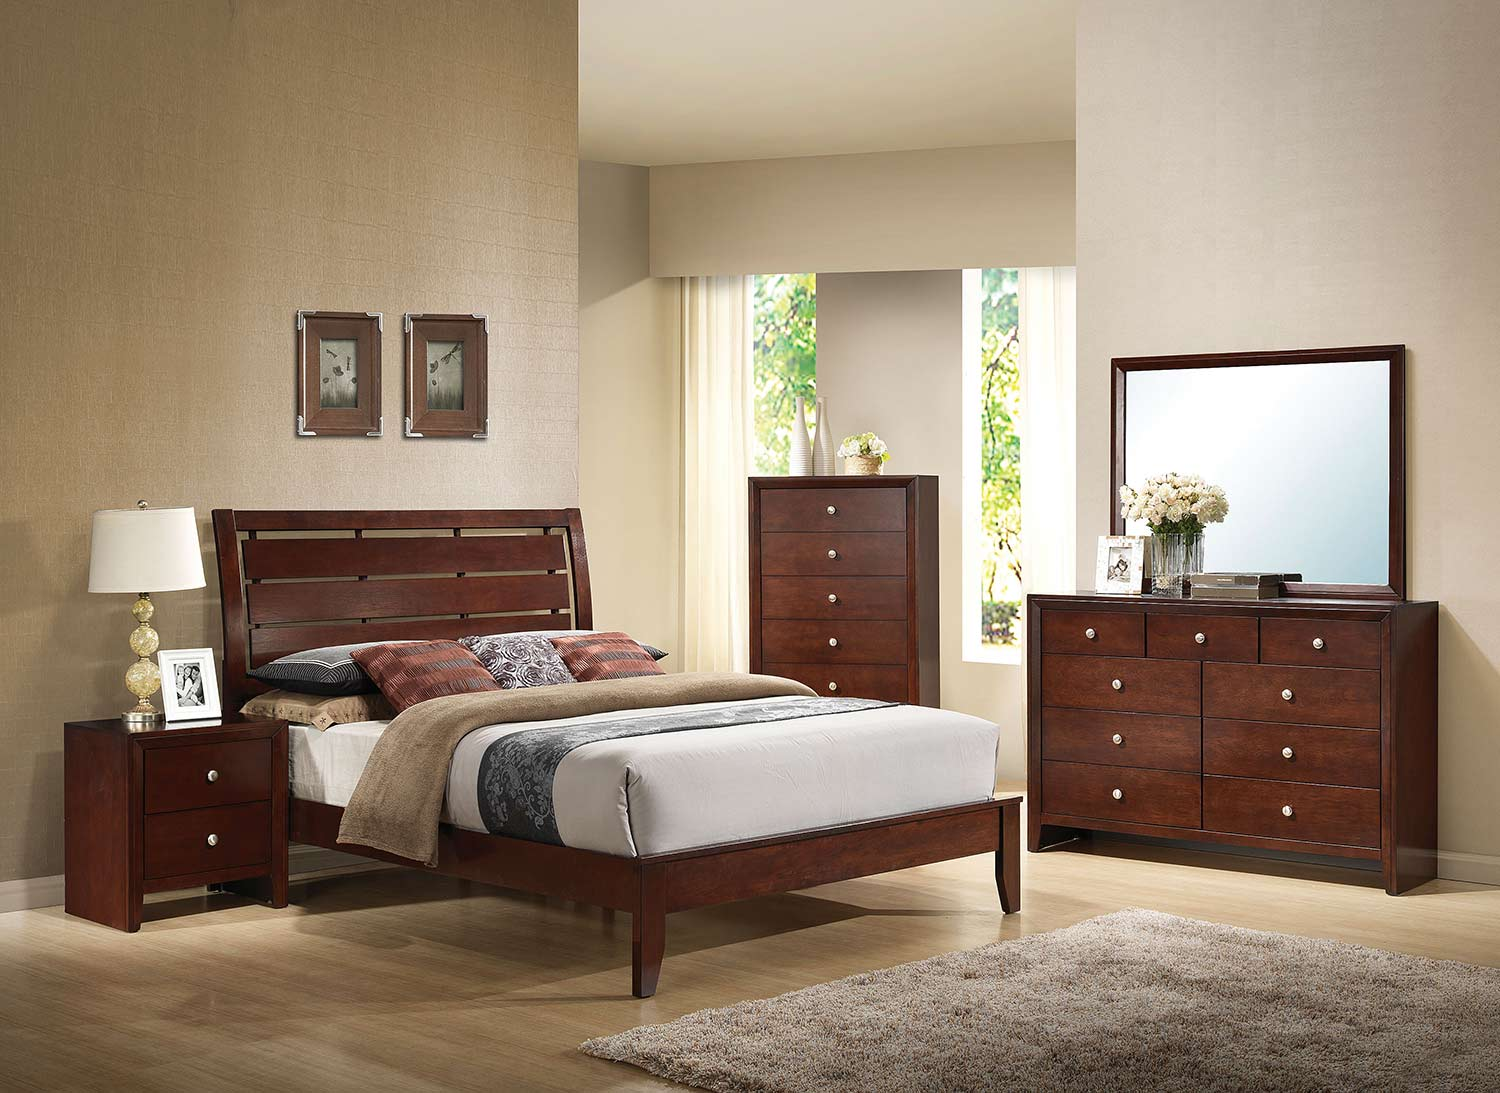 Acme Ilana Bedroom Set - Brown Cherry